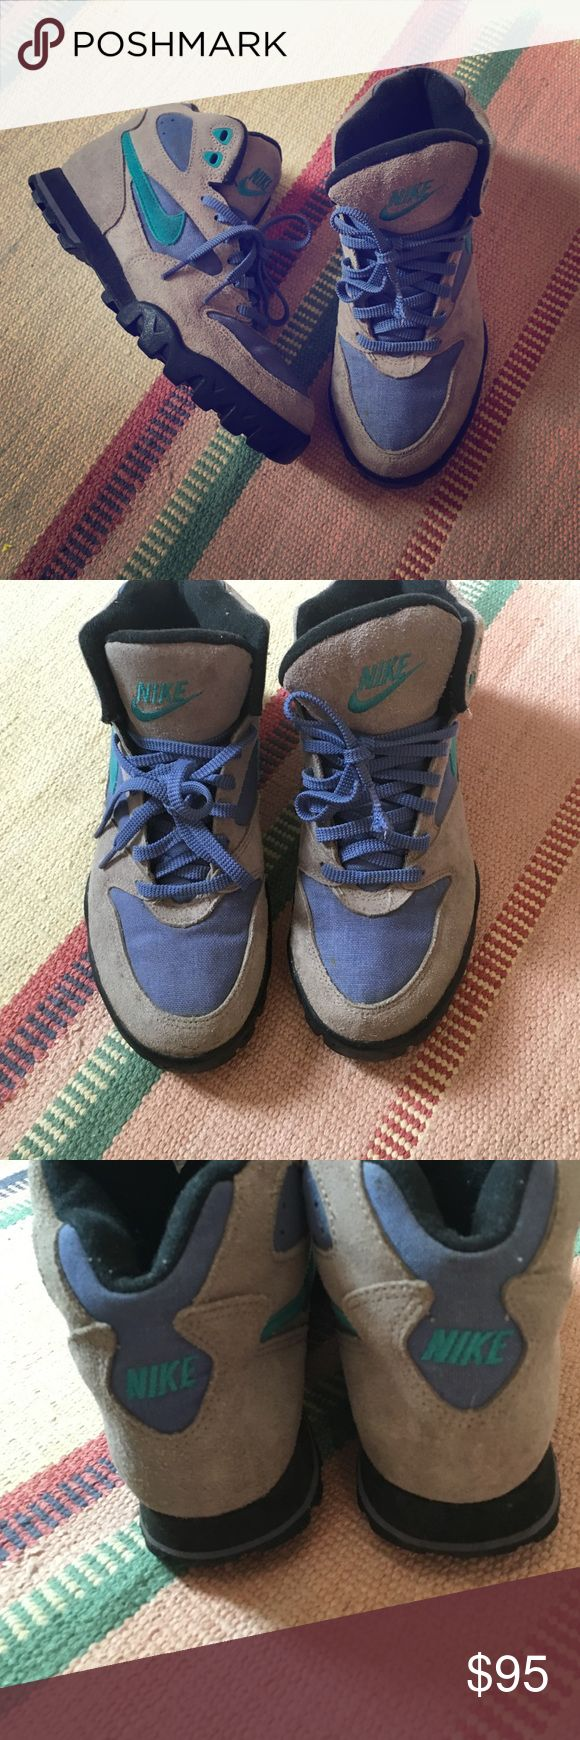 Nike hiking boots Amazing *vintage* Nike hiking boots! Extremely well made and comfortable! Kick it old skewl in these beauties!! **mint** like new condition! Nike Shoes Sneakers